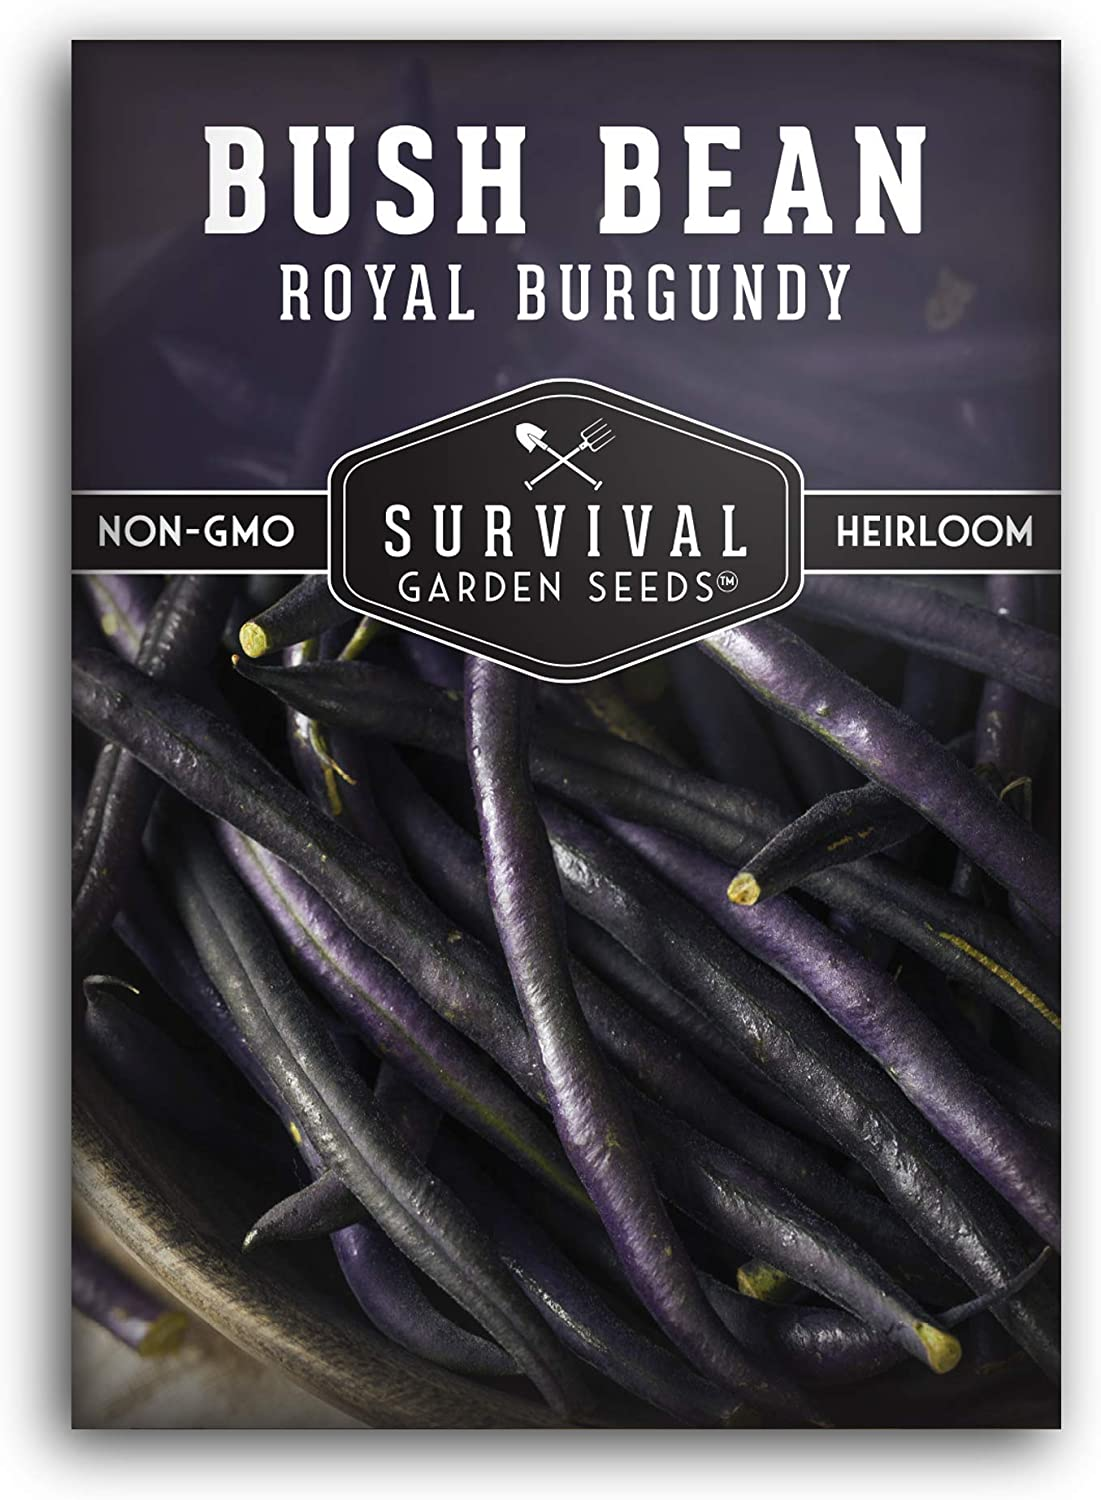 Survival Garden Seeds - Royal Burgundy Bean Seed for Planting - Packet with Instructions to Plant and Grow in Your Home Vegetable Garden - Non-GMO Heirloom Variety